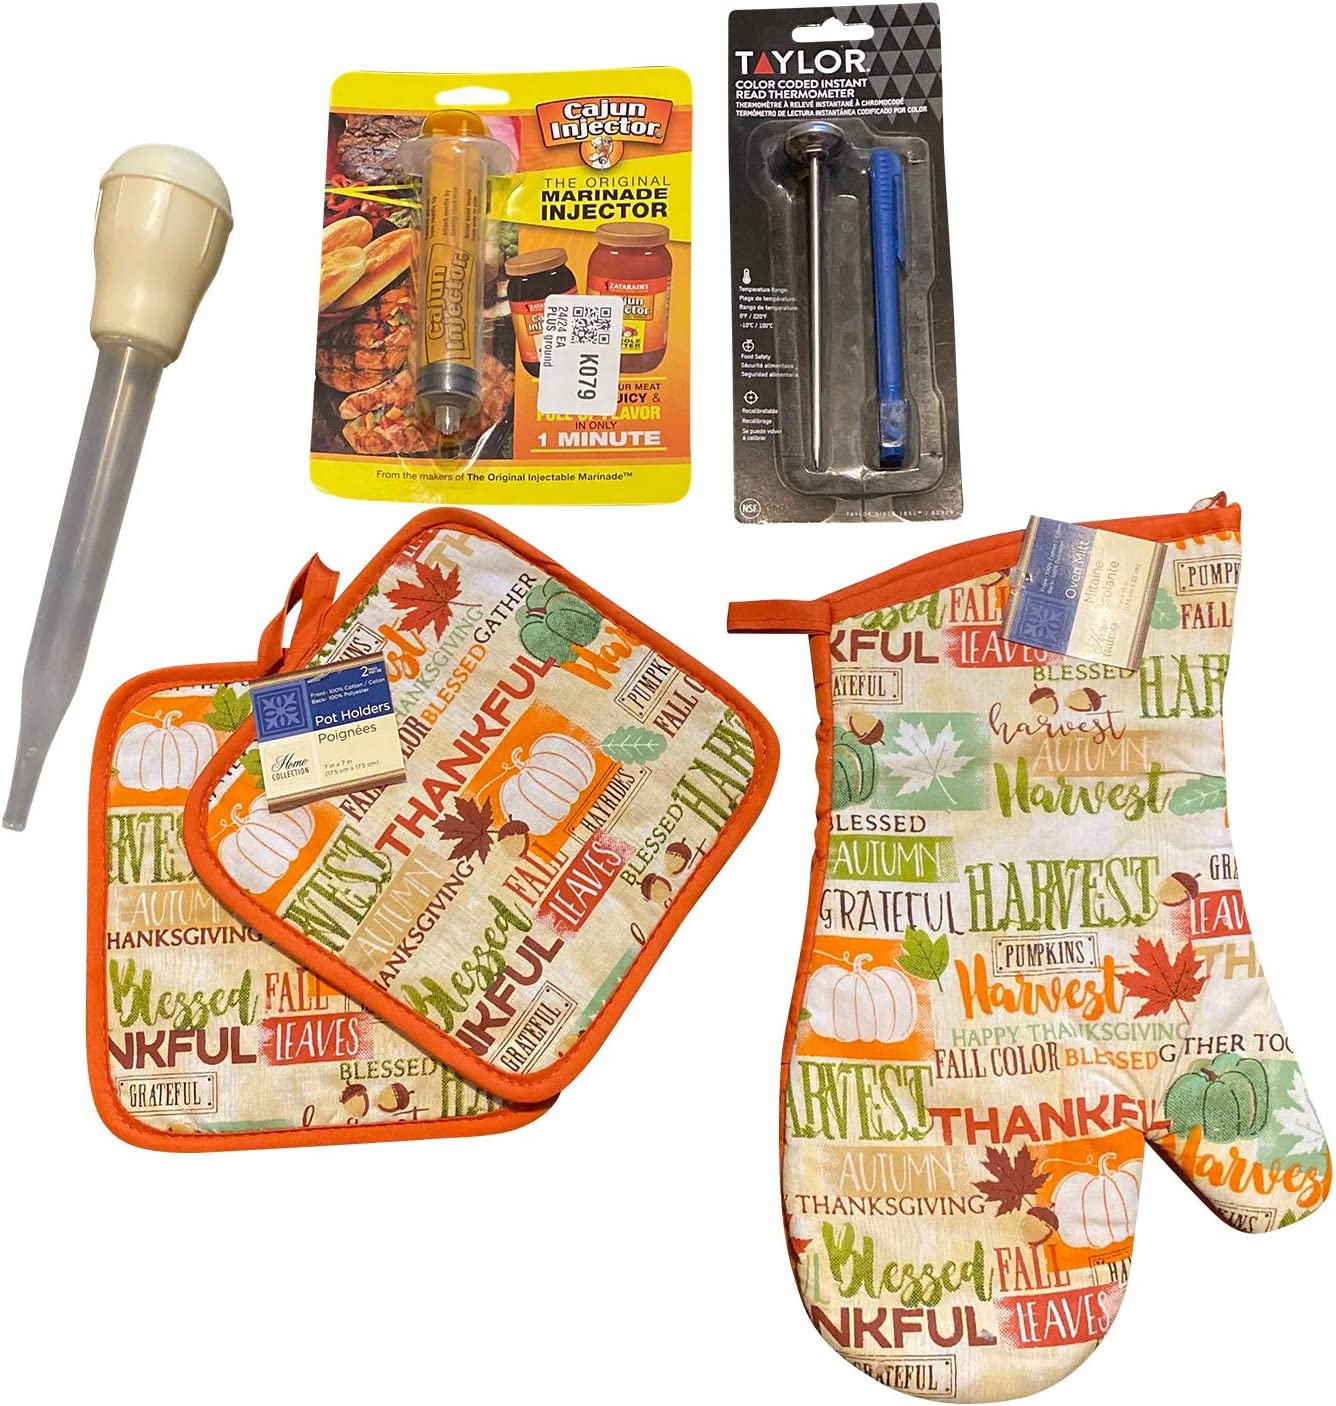 JOTAKE Thanksgiving Kitchen Bundle Turkey Kit with 25% OFF Cooki All stores are sold Basting